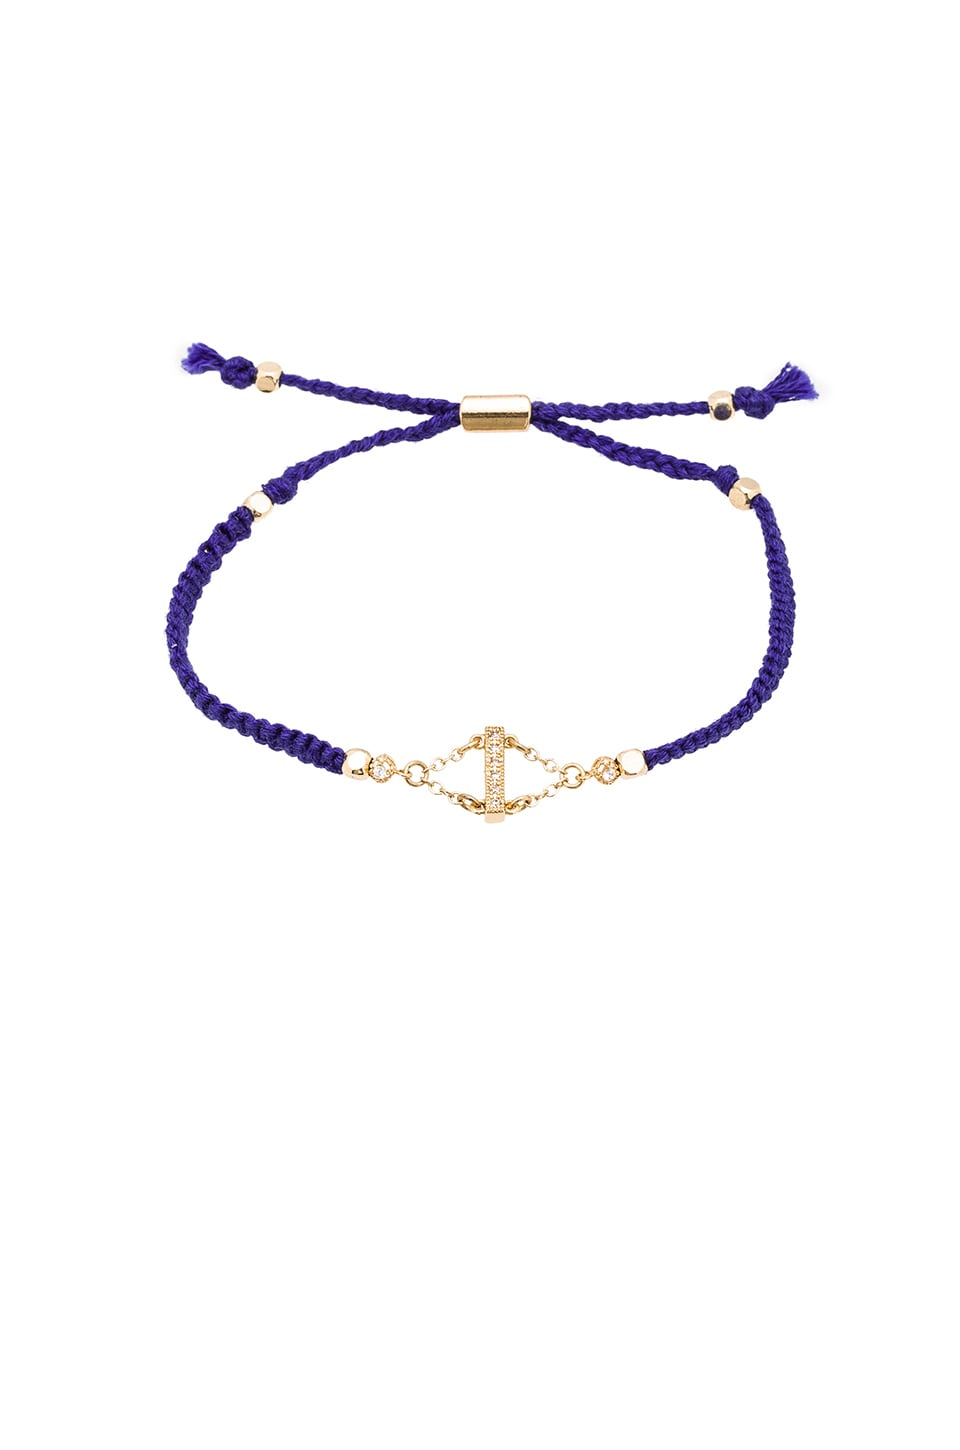 Ettika Dainty Friendship Bracelet With Pave in Blue